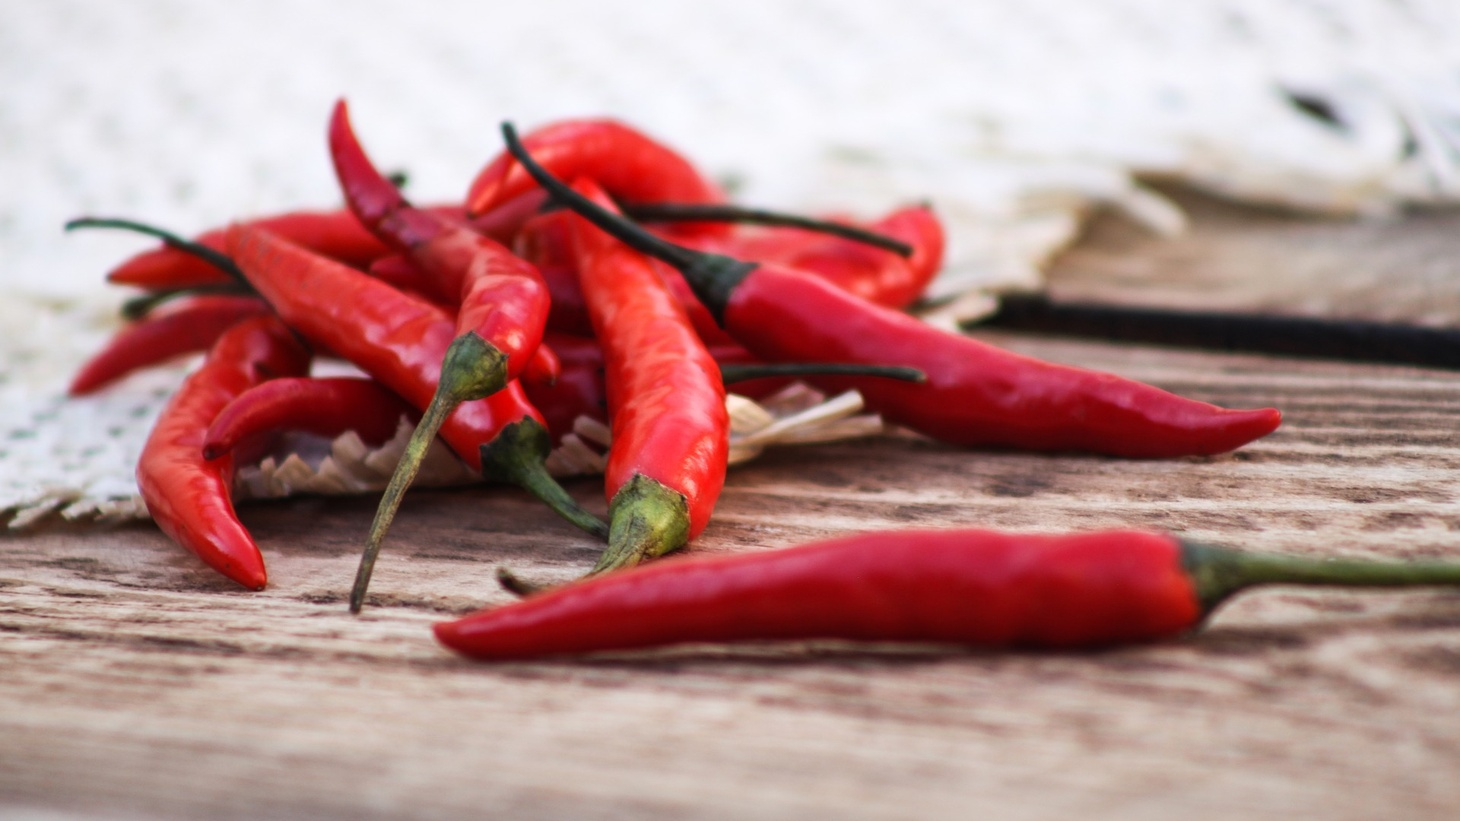 Chili peppers are an important part of Chinese cuisine and culture.